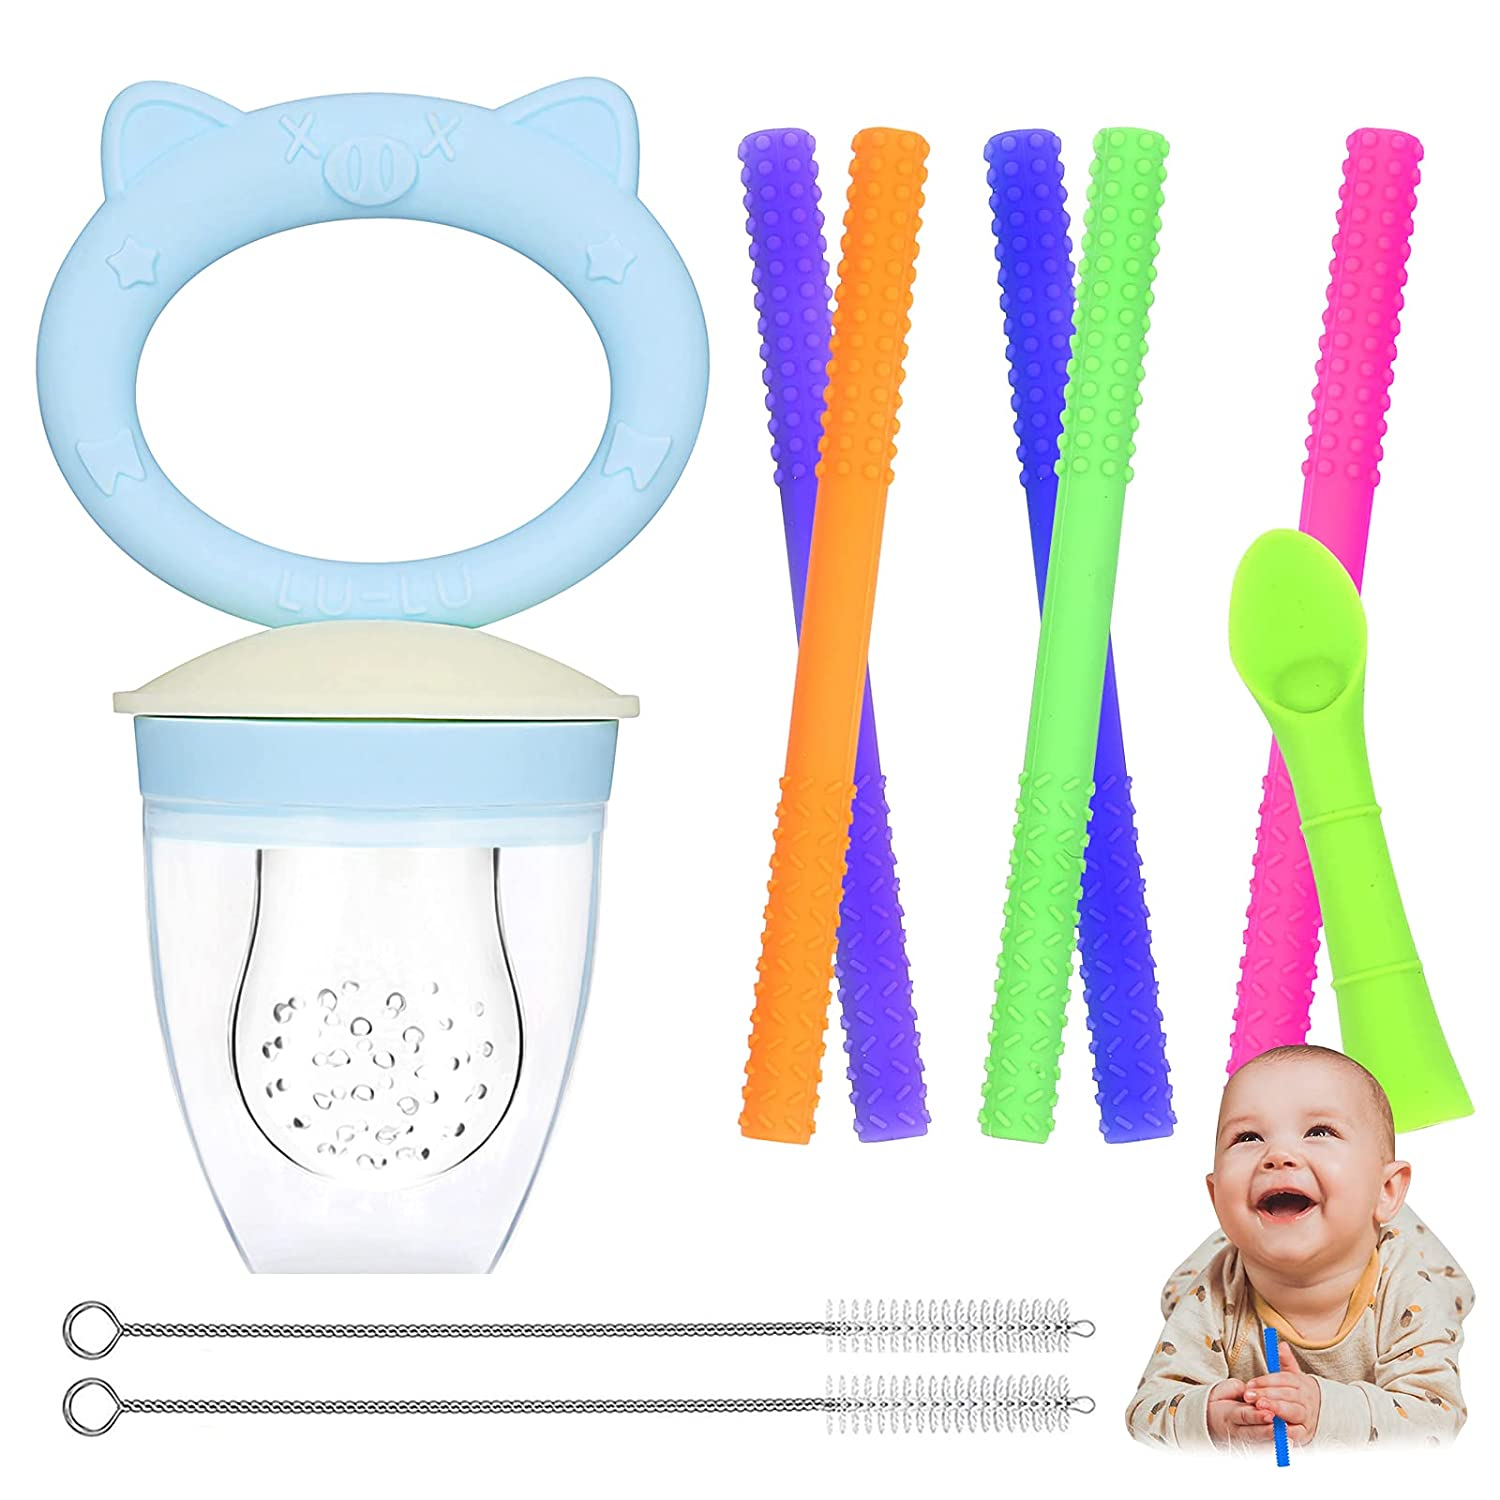 Hollow Teething Tubes, Moduskye 7 in 1 Teething Tubes Set Soft Silicone Teething Toys for Babies (6-18 Months) Included 5 Teething Tubes and 2 Cleaning Brushes